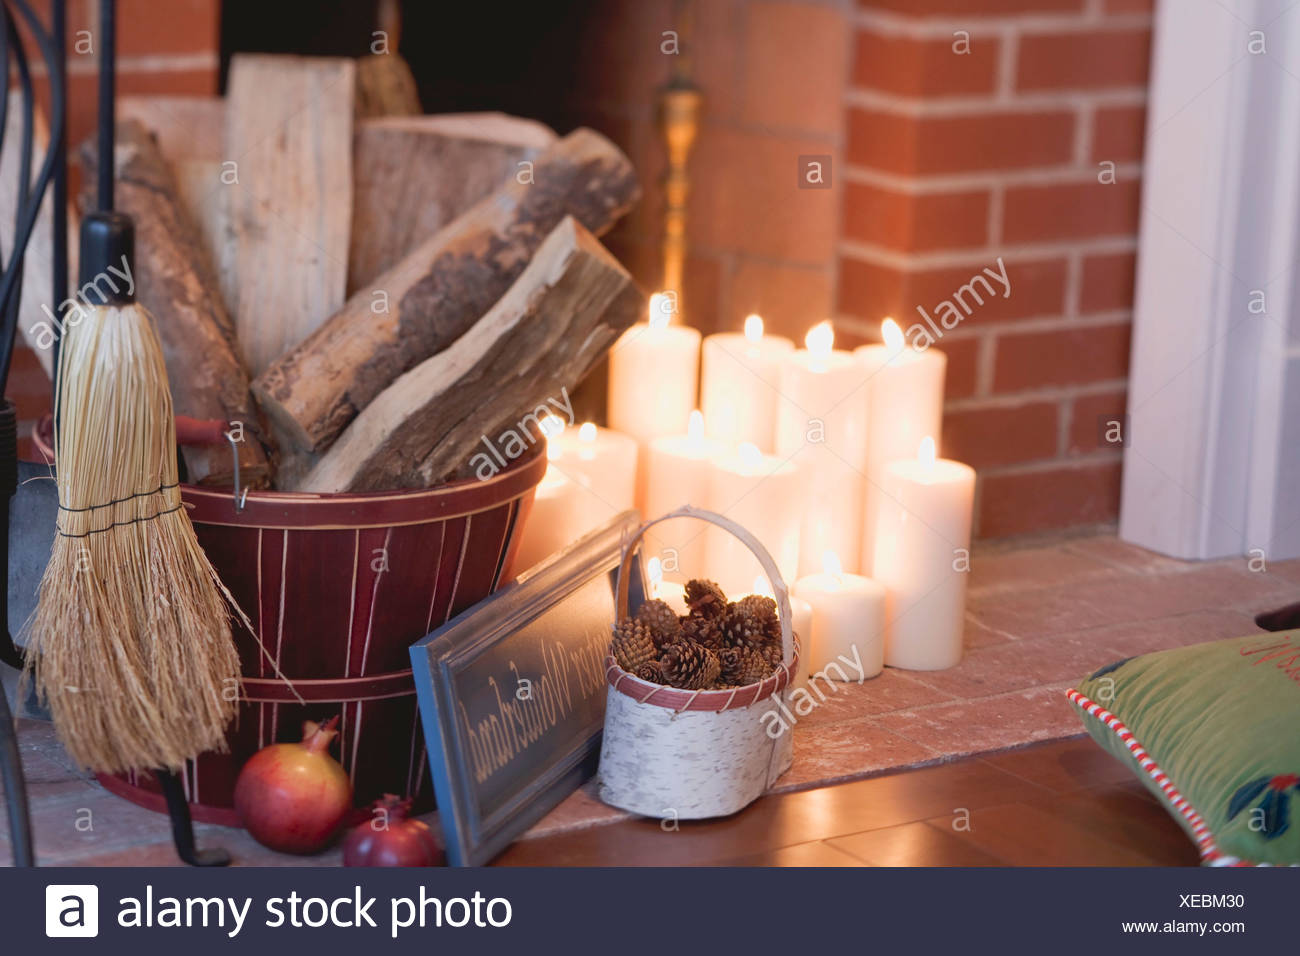 Christmas Decorations In Front Of Fireplace Stock Photo 284228308